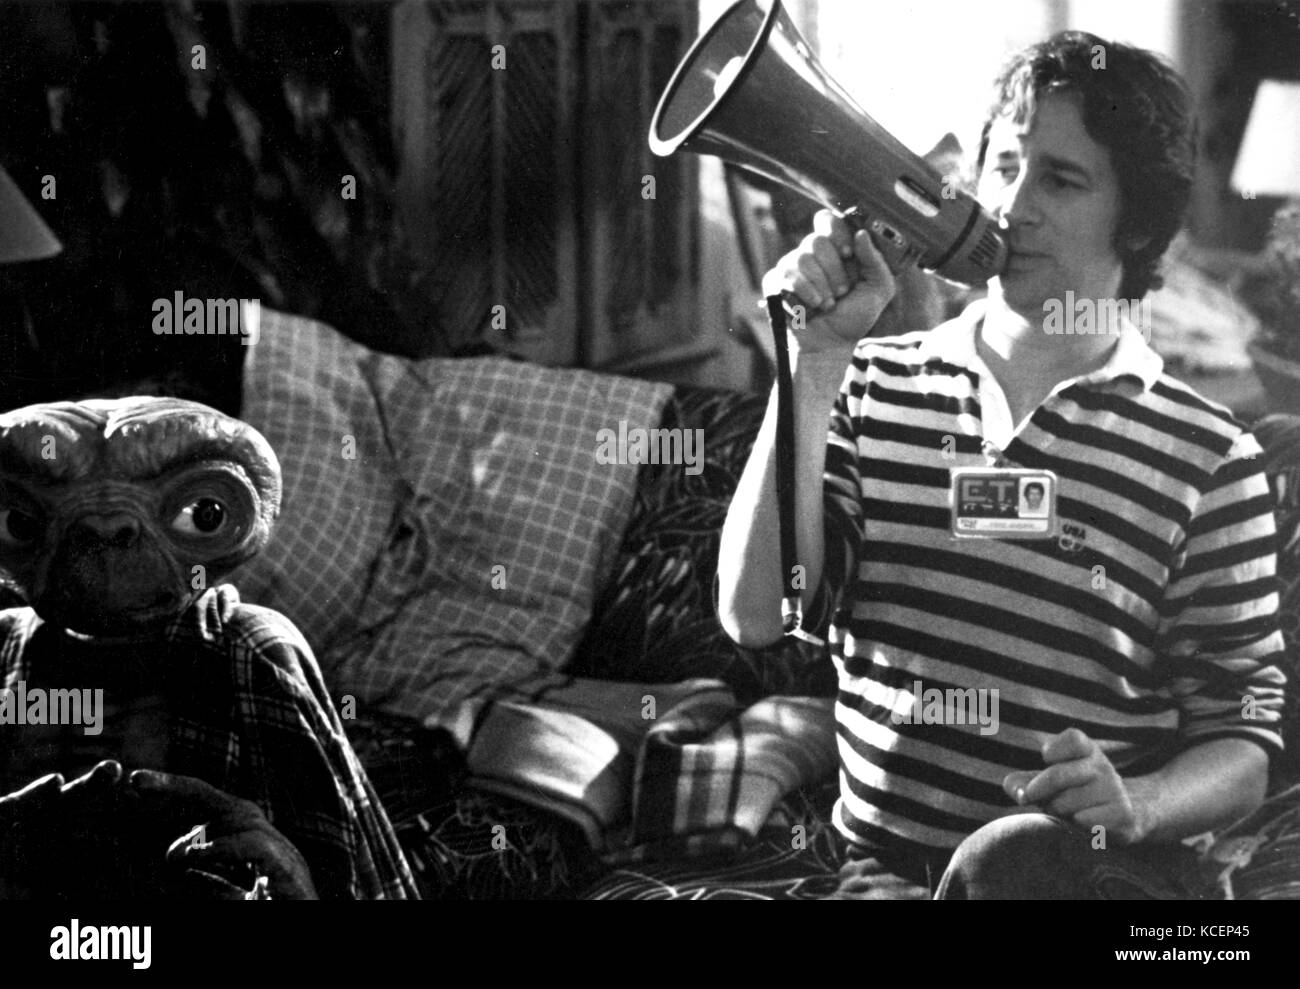 Photograph of Steven Spielberg (1946-) an American director, producer, and screenwriter, during the filming of E.T. - Stock Image